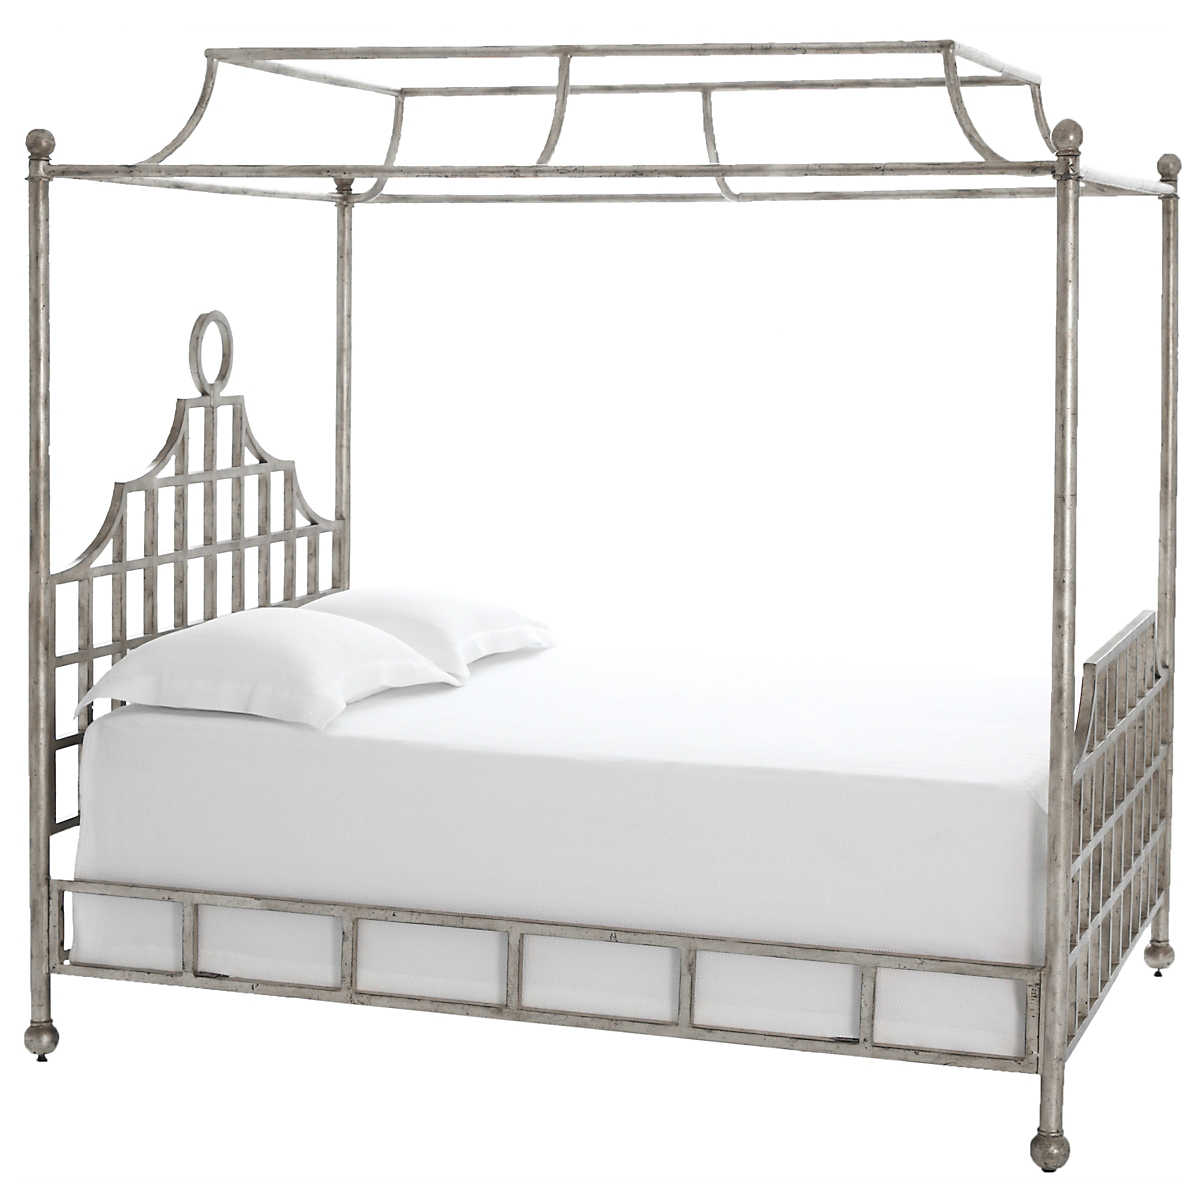 Silver Canopy Bed Frame Part - 43: Annie Selke